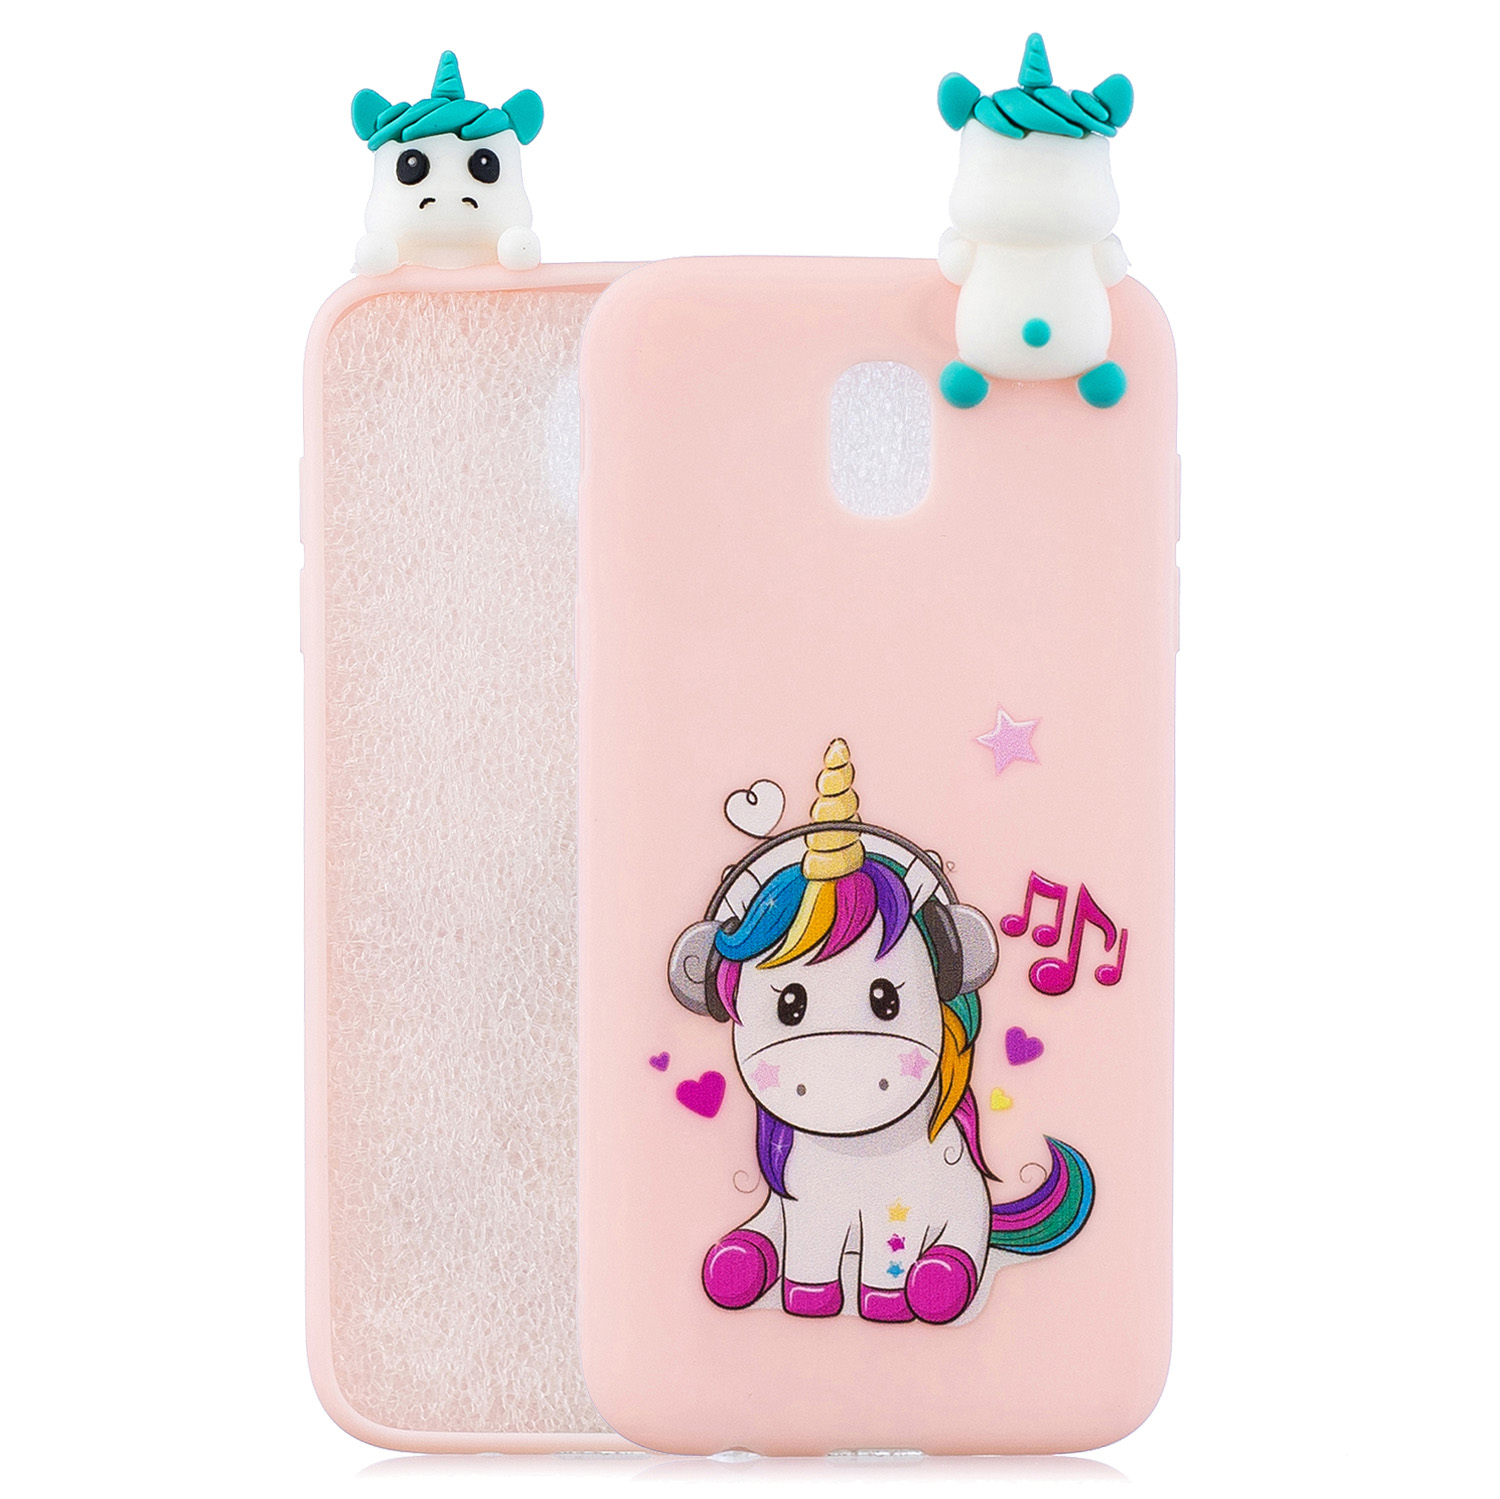 For Redmi 8A 3D Cartoon Painting Back Cover Soft TPU Mobile Phone Case Shell Music unicorn